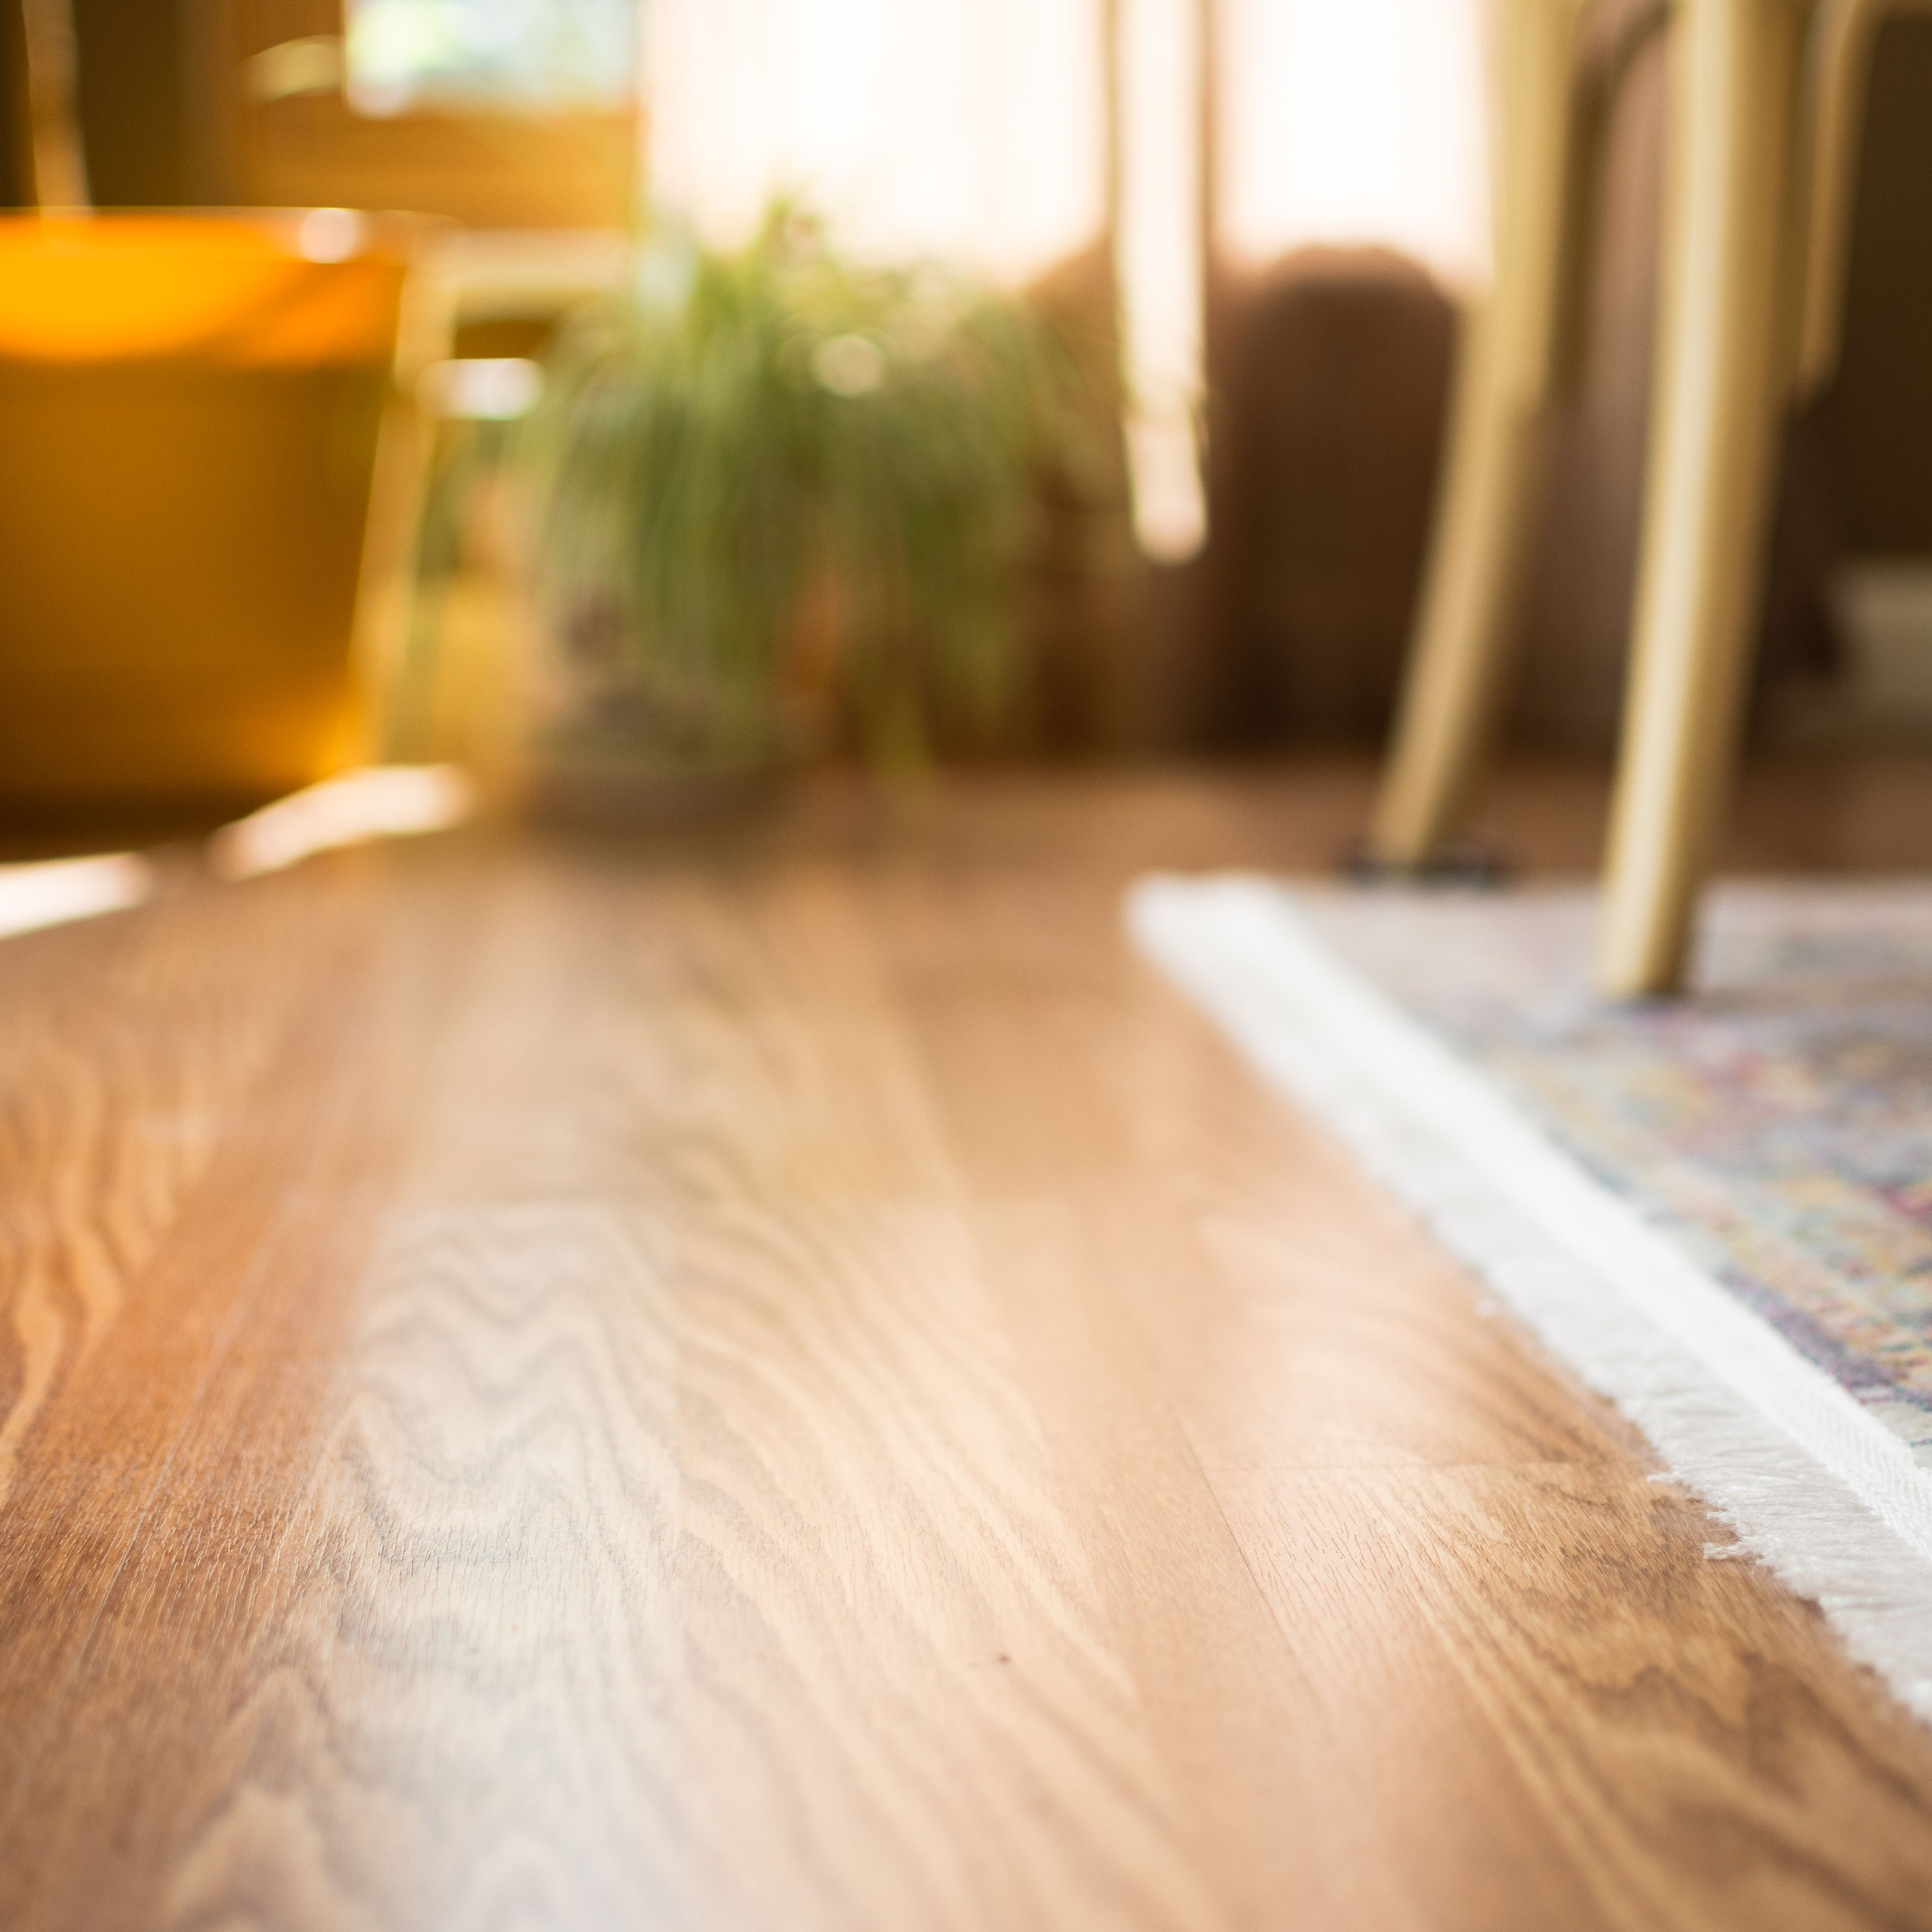 9 Laminate Floor Mistakes And How To, Can Laminate Flooring Smell